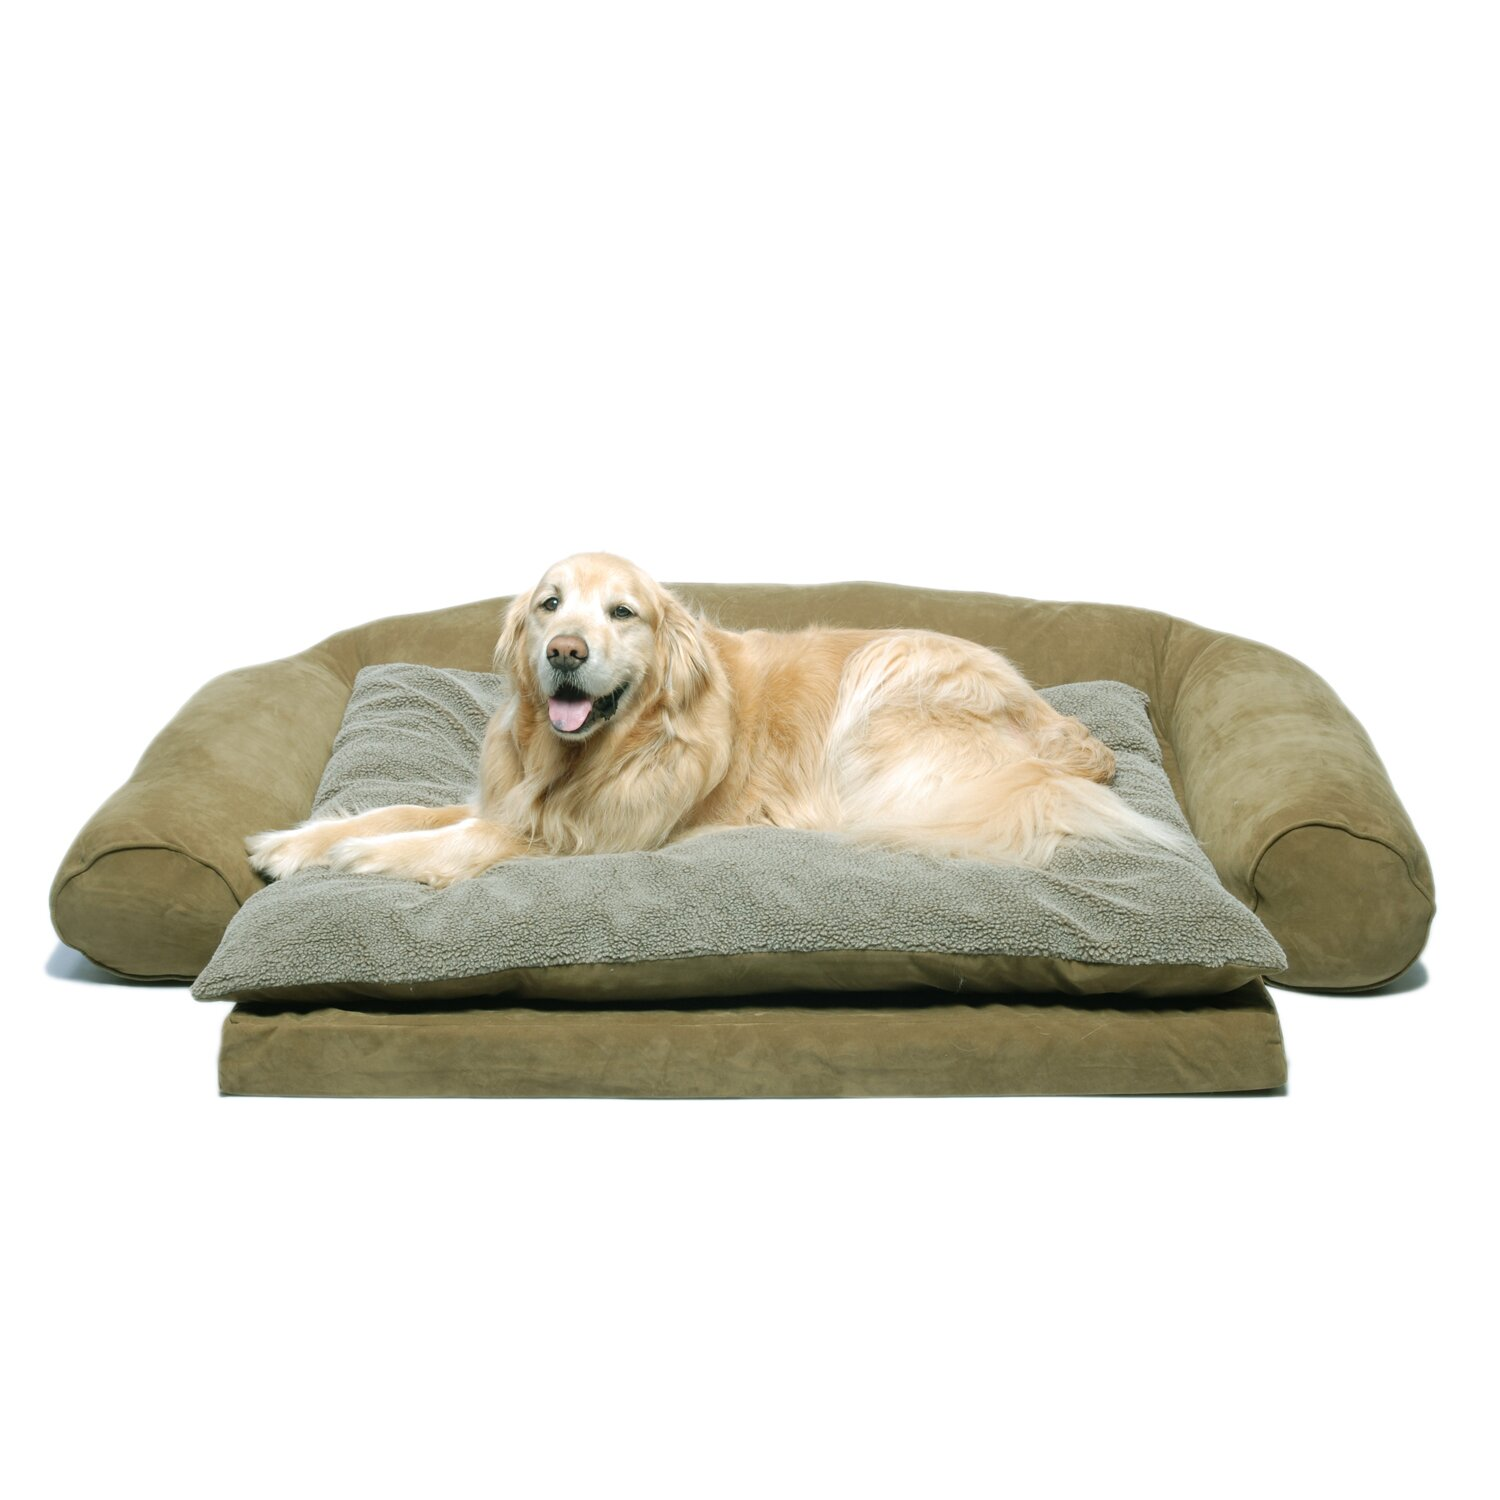 Ortho Sleeper Comfort Couch Bolster Dog Bed For Joint Pain Relief